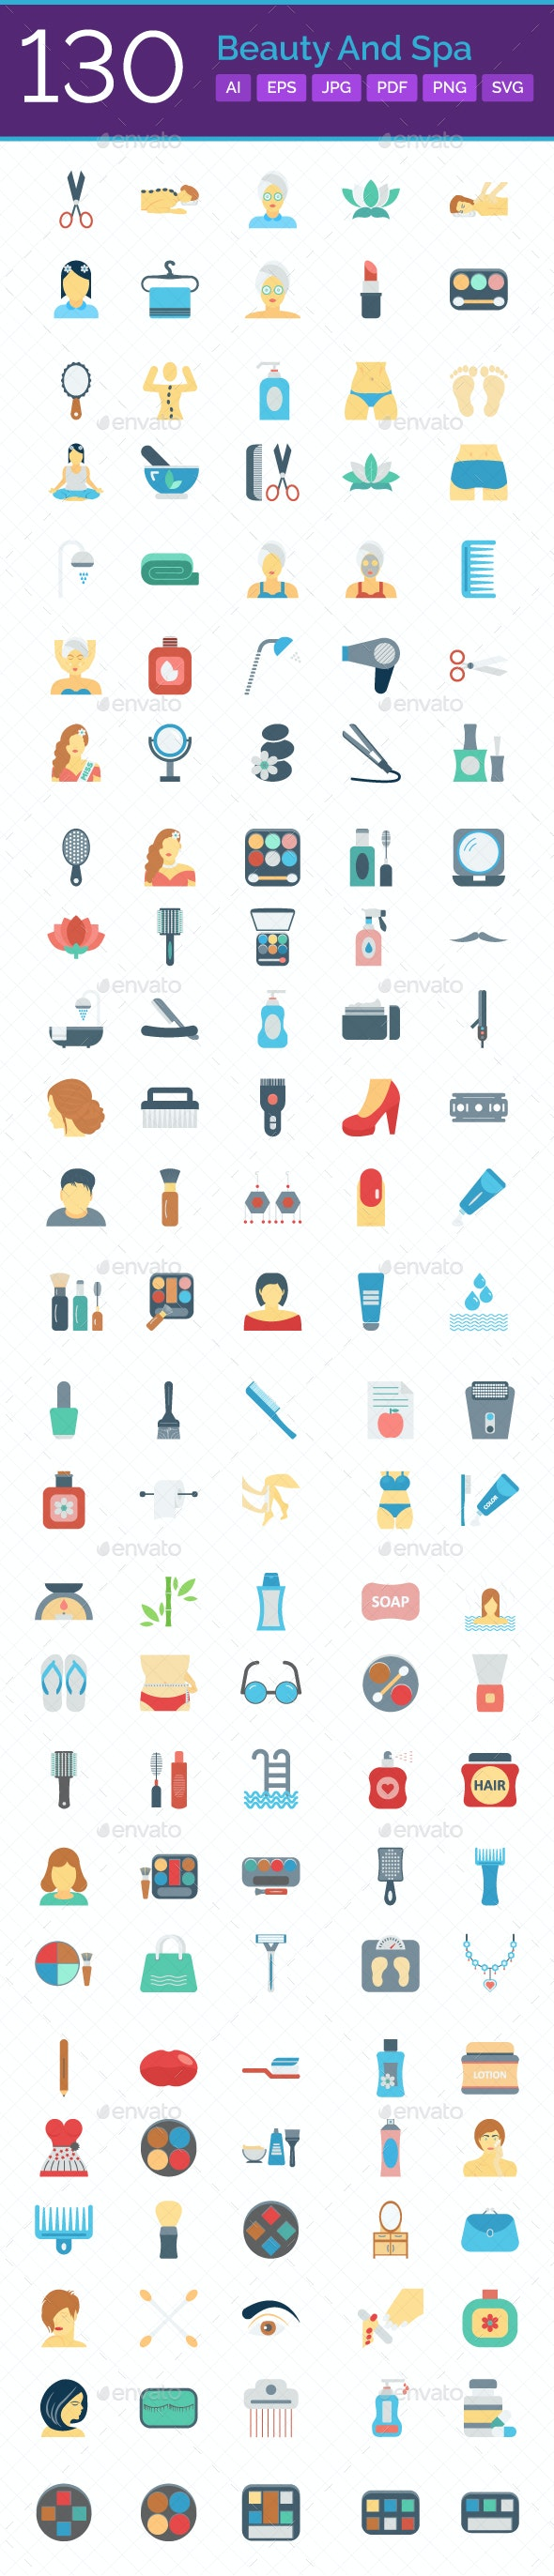 130 Beauty and Spa Color Vector Icons Set - Icons